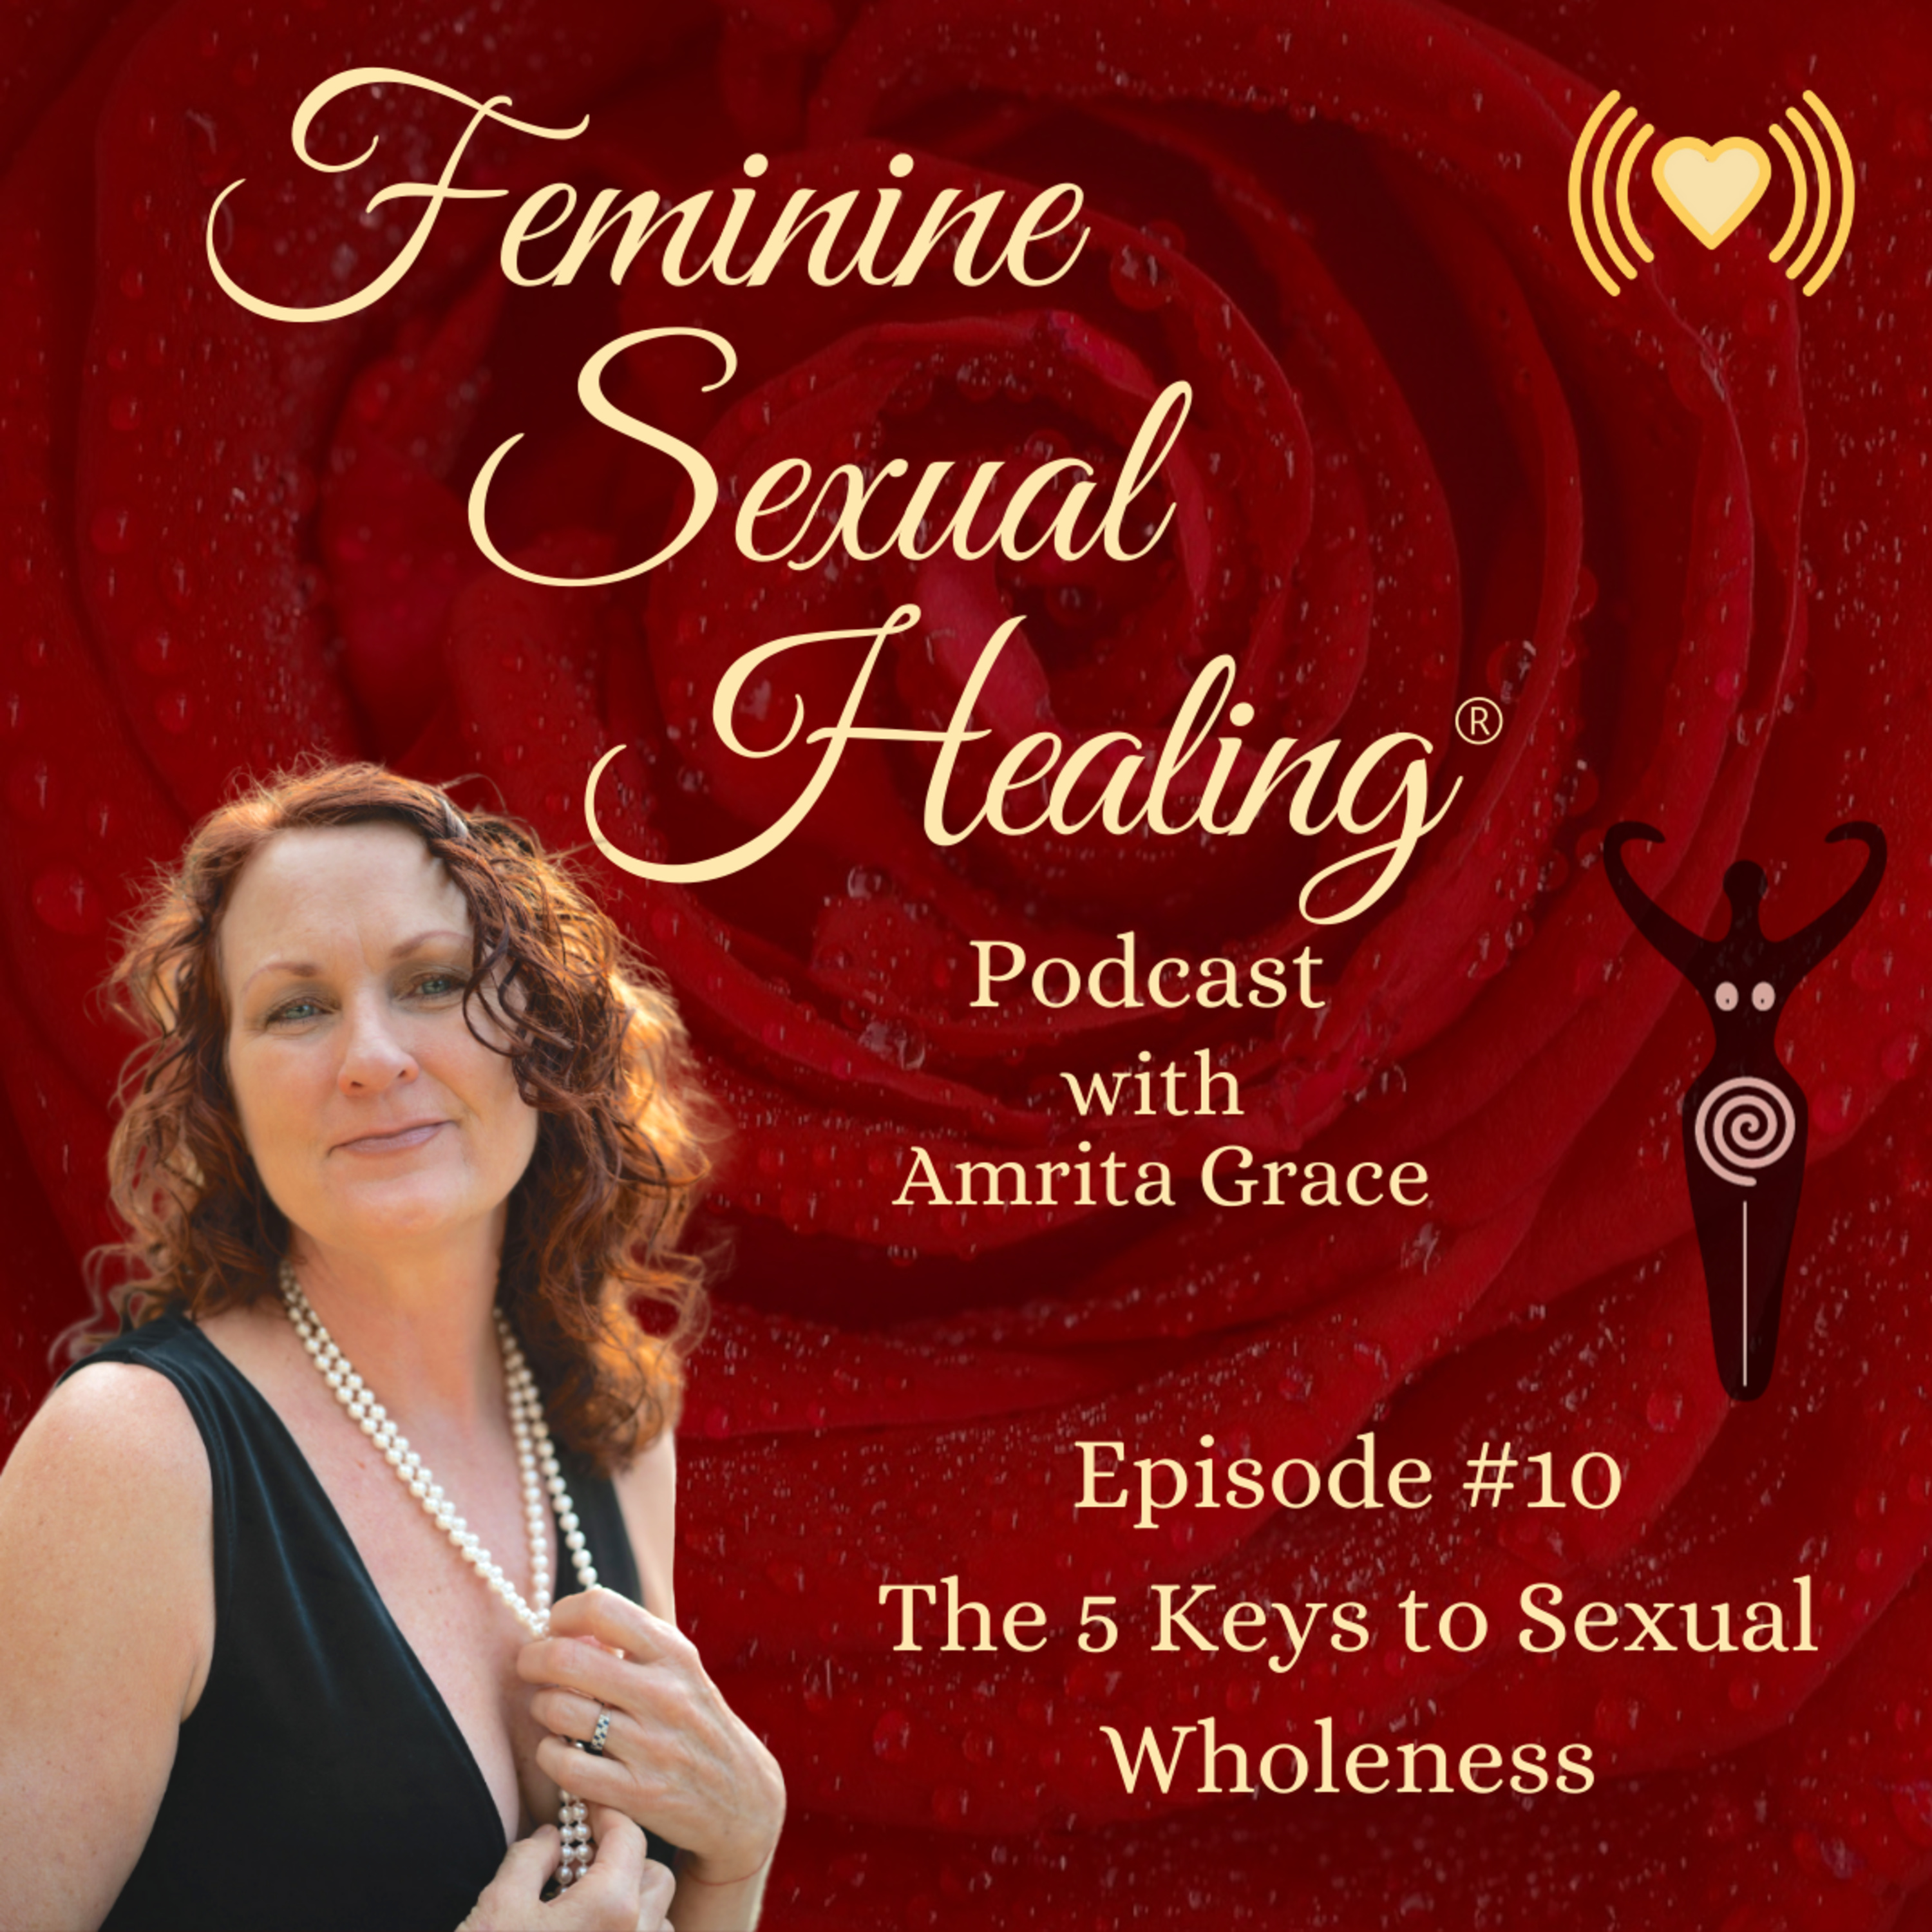 Episode #10 The 5 Keys to Sexual Wholeness